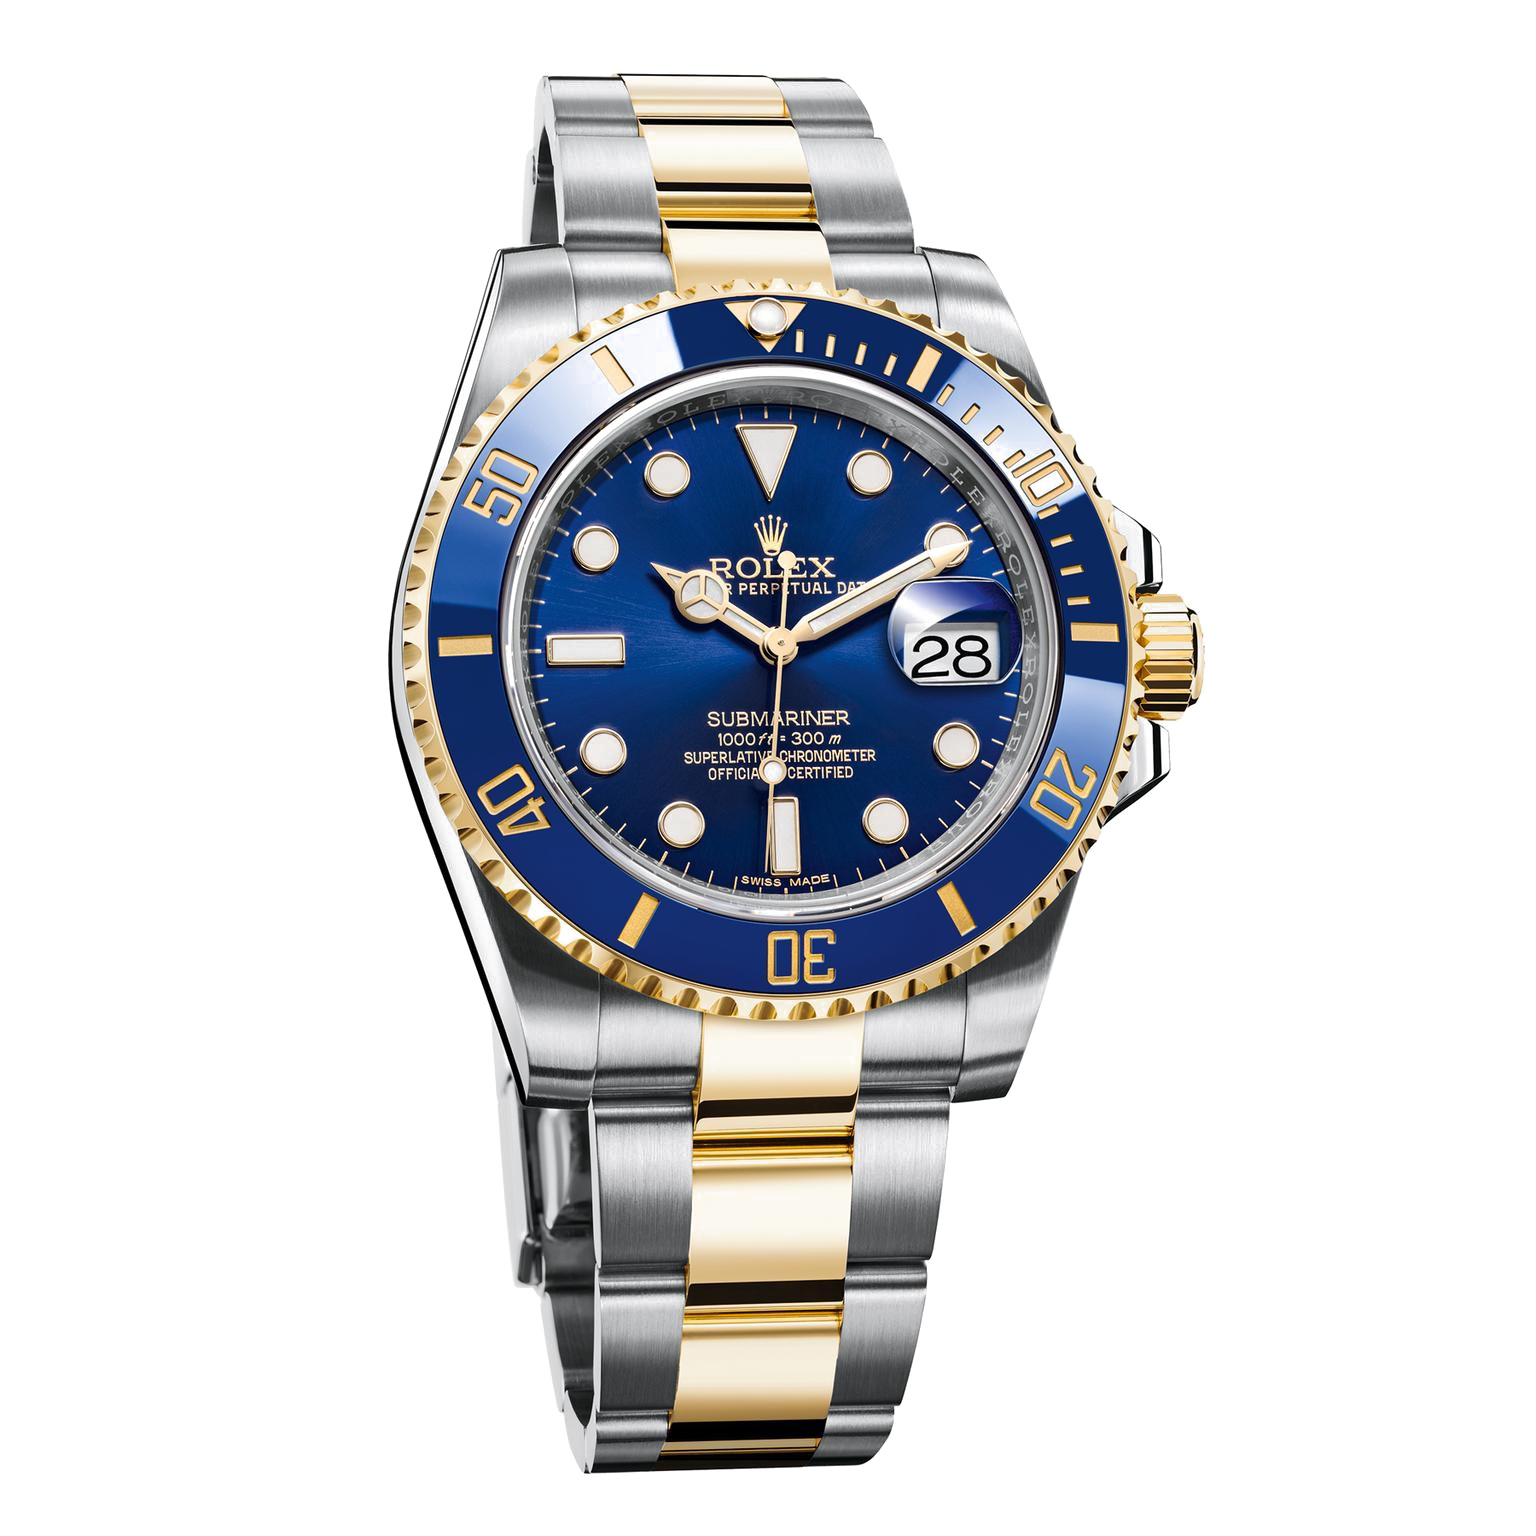 Rolex submariner png. Pic peoplepng com